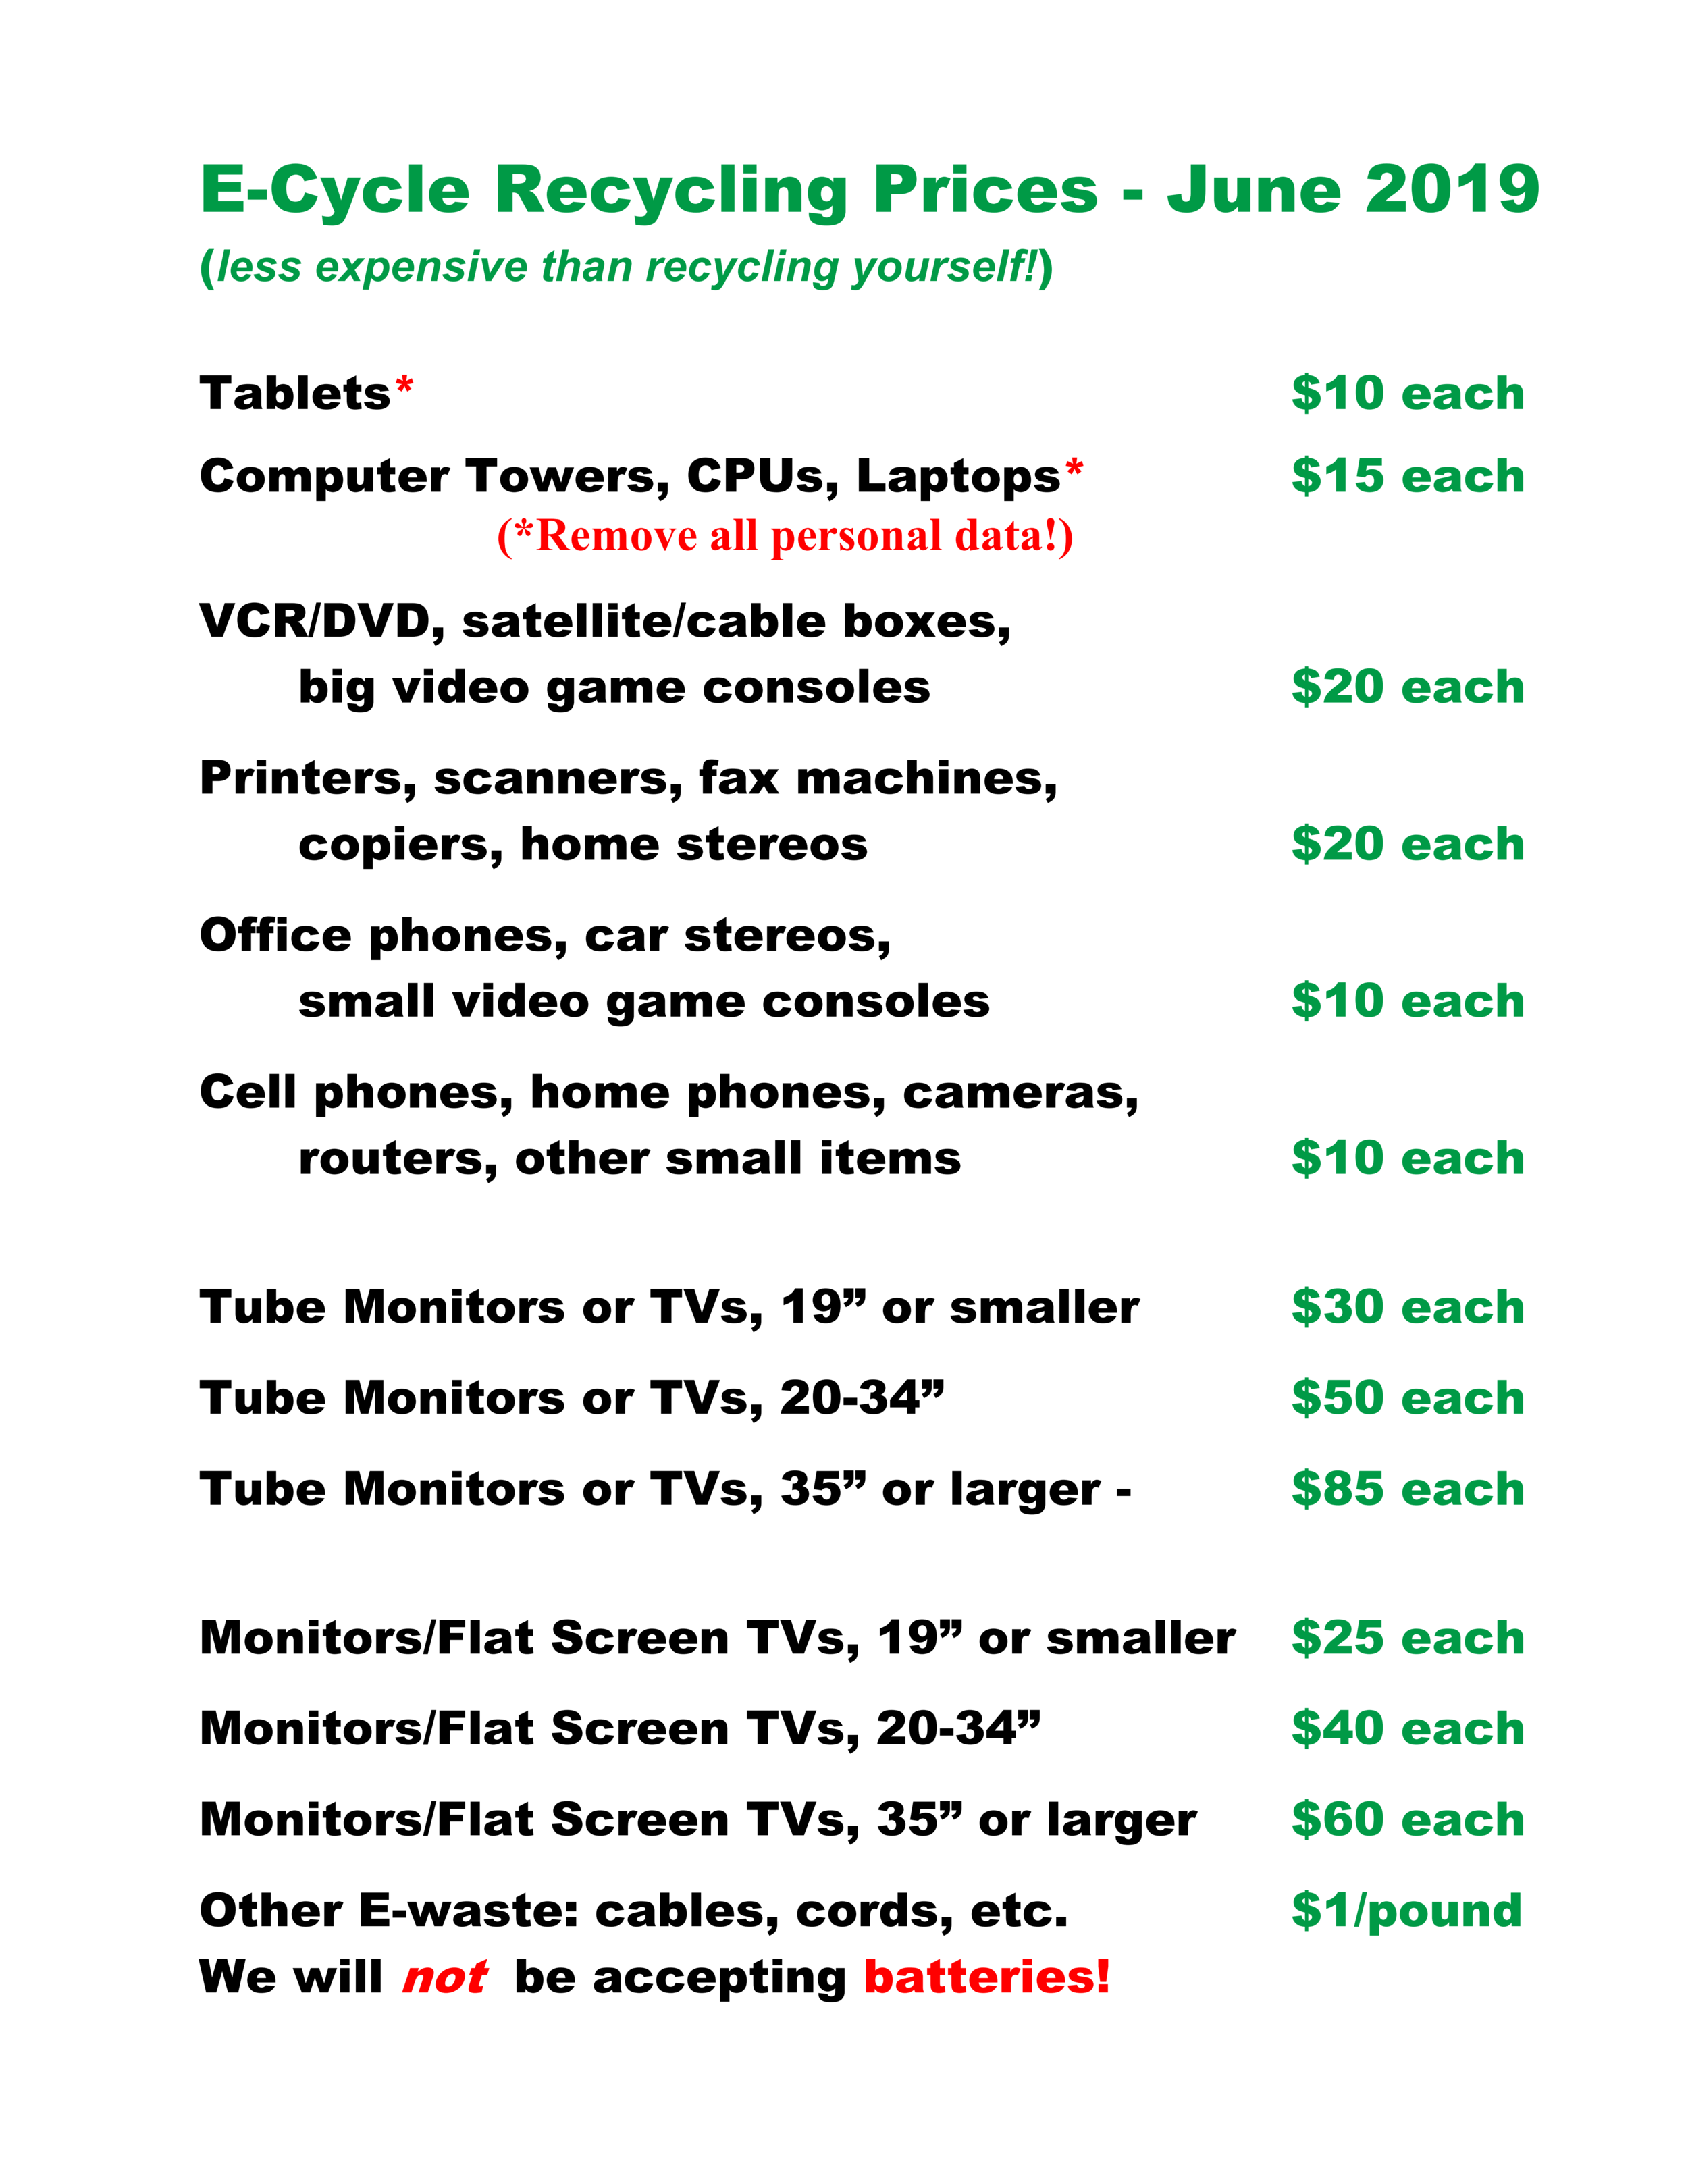 Ecycle_prices_June_2019.png